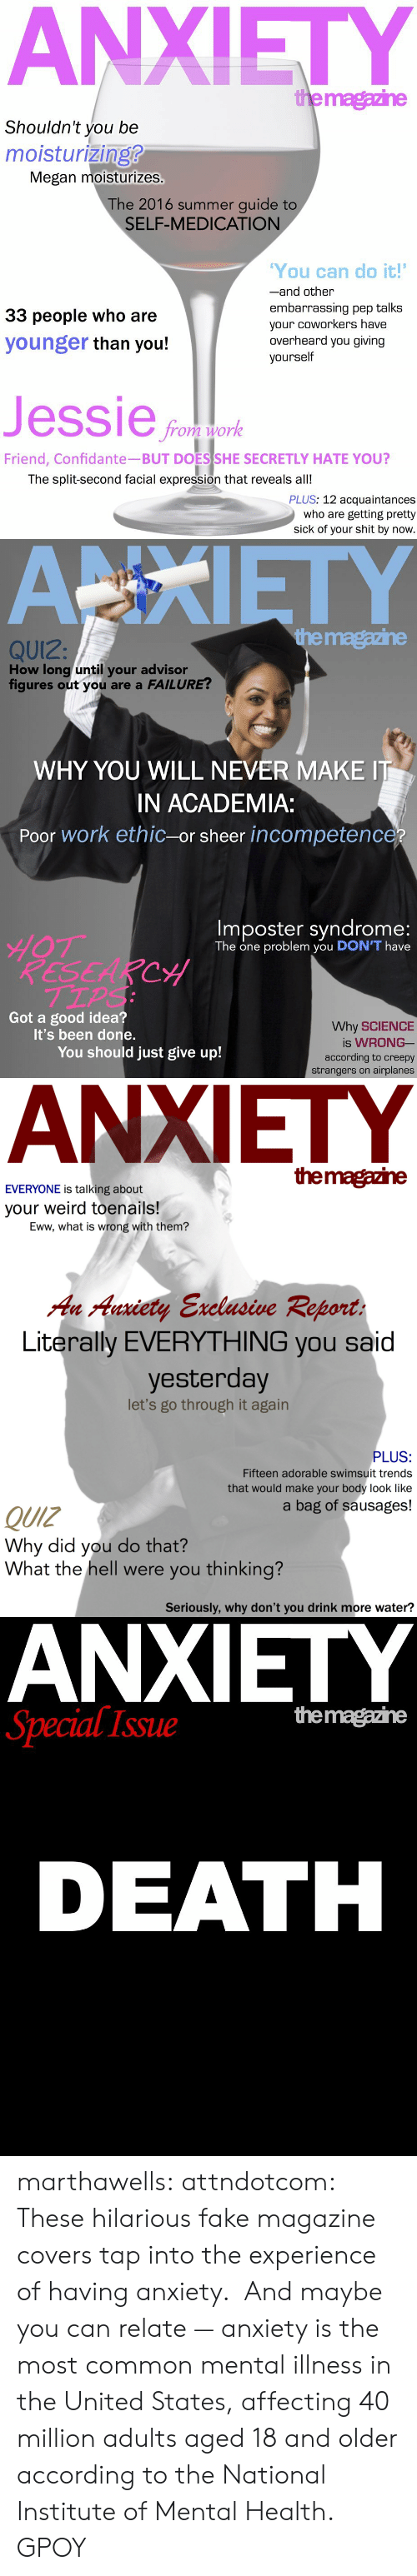 Its Been Done: ANXIETY  emagazine  Shouldn't you be  moisturizing?  Megan moisturizes.  The 2016 summer guide to  SELF-MEDICATION  You can do it!  -and other  embarrassing pep talks  your coworkers have  overheard you giving  yourself  33 people who are  younger than you!  essieano  om wo  Friend, Confidante-BUT DOES SHE SECRETLY HATE YOU?  The split-second facial expression that reveals all!  PLUS: 12 acquaintances  who are getting pretty  sick of your shit by now.   ANXIETY  themagazine  QUIZ  How long until your advisor  figures out you are a FAILURE?  WHY YOU WILL NEVER MAKE IT  IN ACADEMIA:  Poor work ethic-or sheer incompetence  Imposter syndrome:  The one problem you DON'T have  ESEARCH  TIPS  Got a good idea?  Why SCIENCE  is WRONG-  according to creepy  strangers on airplanes  It's been done.  You should just give up!   ANXIETY  themagaine  EVERYONE is talking about  your weird toenails!  Eww, what is wrong with them?  An Auiey Exelasive Report  Literally EVERYTHING you said  yesterday  let's go through it again  PLUS  Fifteen adorable swimsuit trends  that would make your body look like  a bag of sausages!  QUIZ  Why did you do that?  What the hell were you thinking?  Seriously, why don't you drink more water?   ANXIETY  Issue  themagazine  DEATH marthawells:  attndotcom:   These hilarious fake magazine covers tap into the experience of having anxiety. And maybe you can relate — anxiety is the most common mental illness in the United States, affecting 40 million adults aged 18 and older according to the National Institute of Mental Health.  GPOY